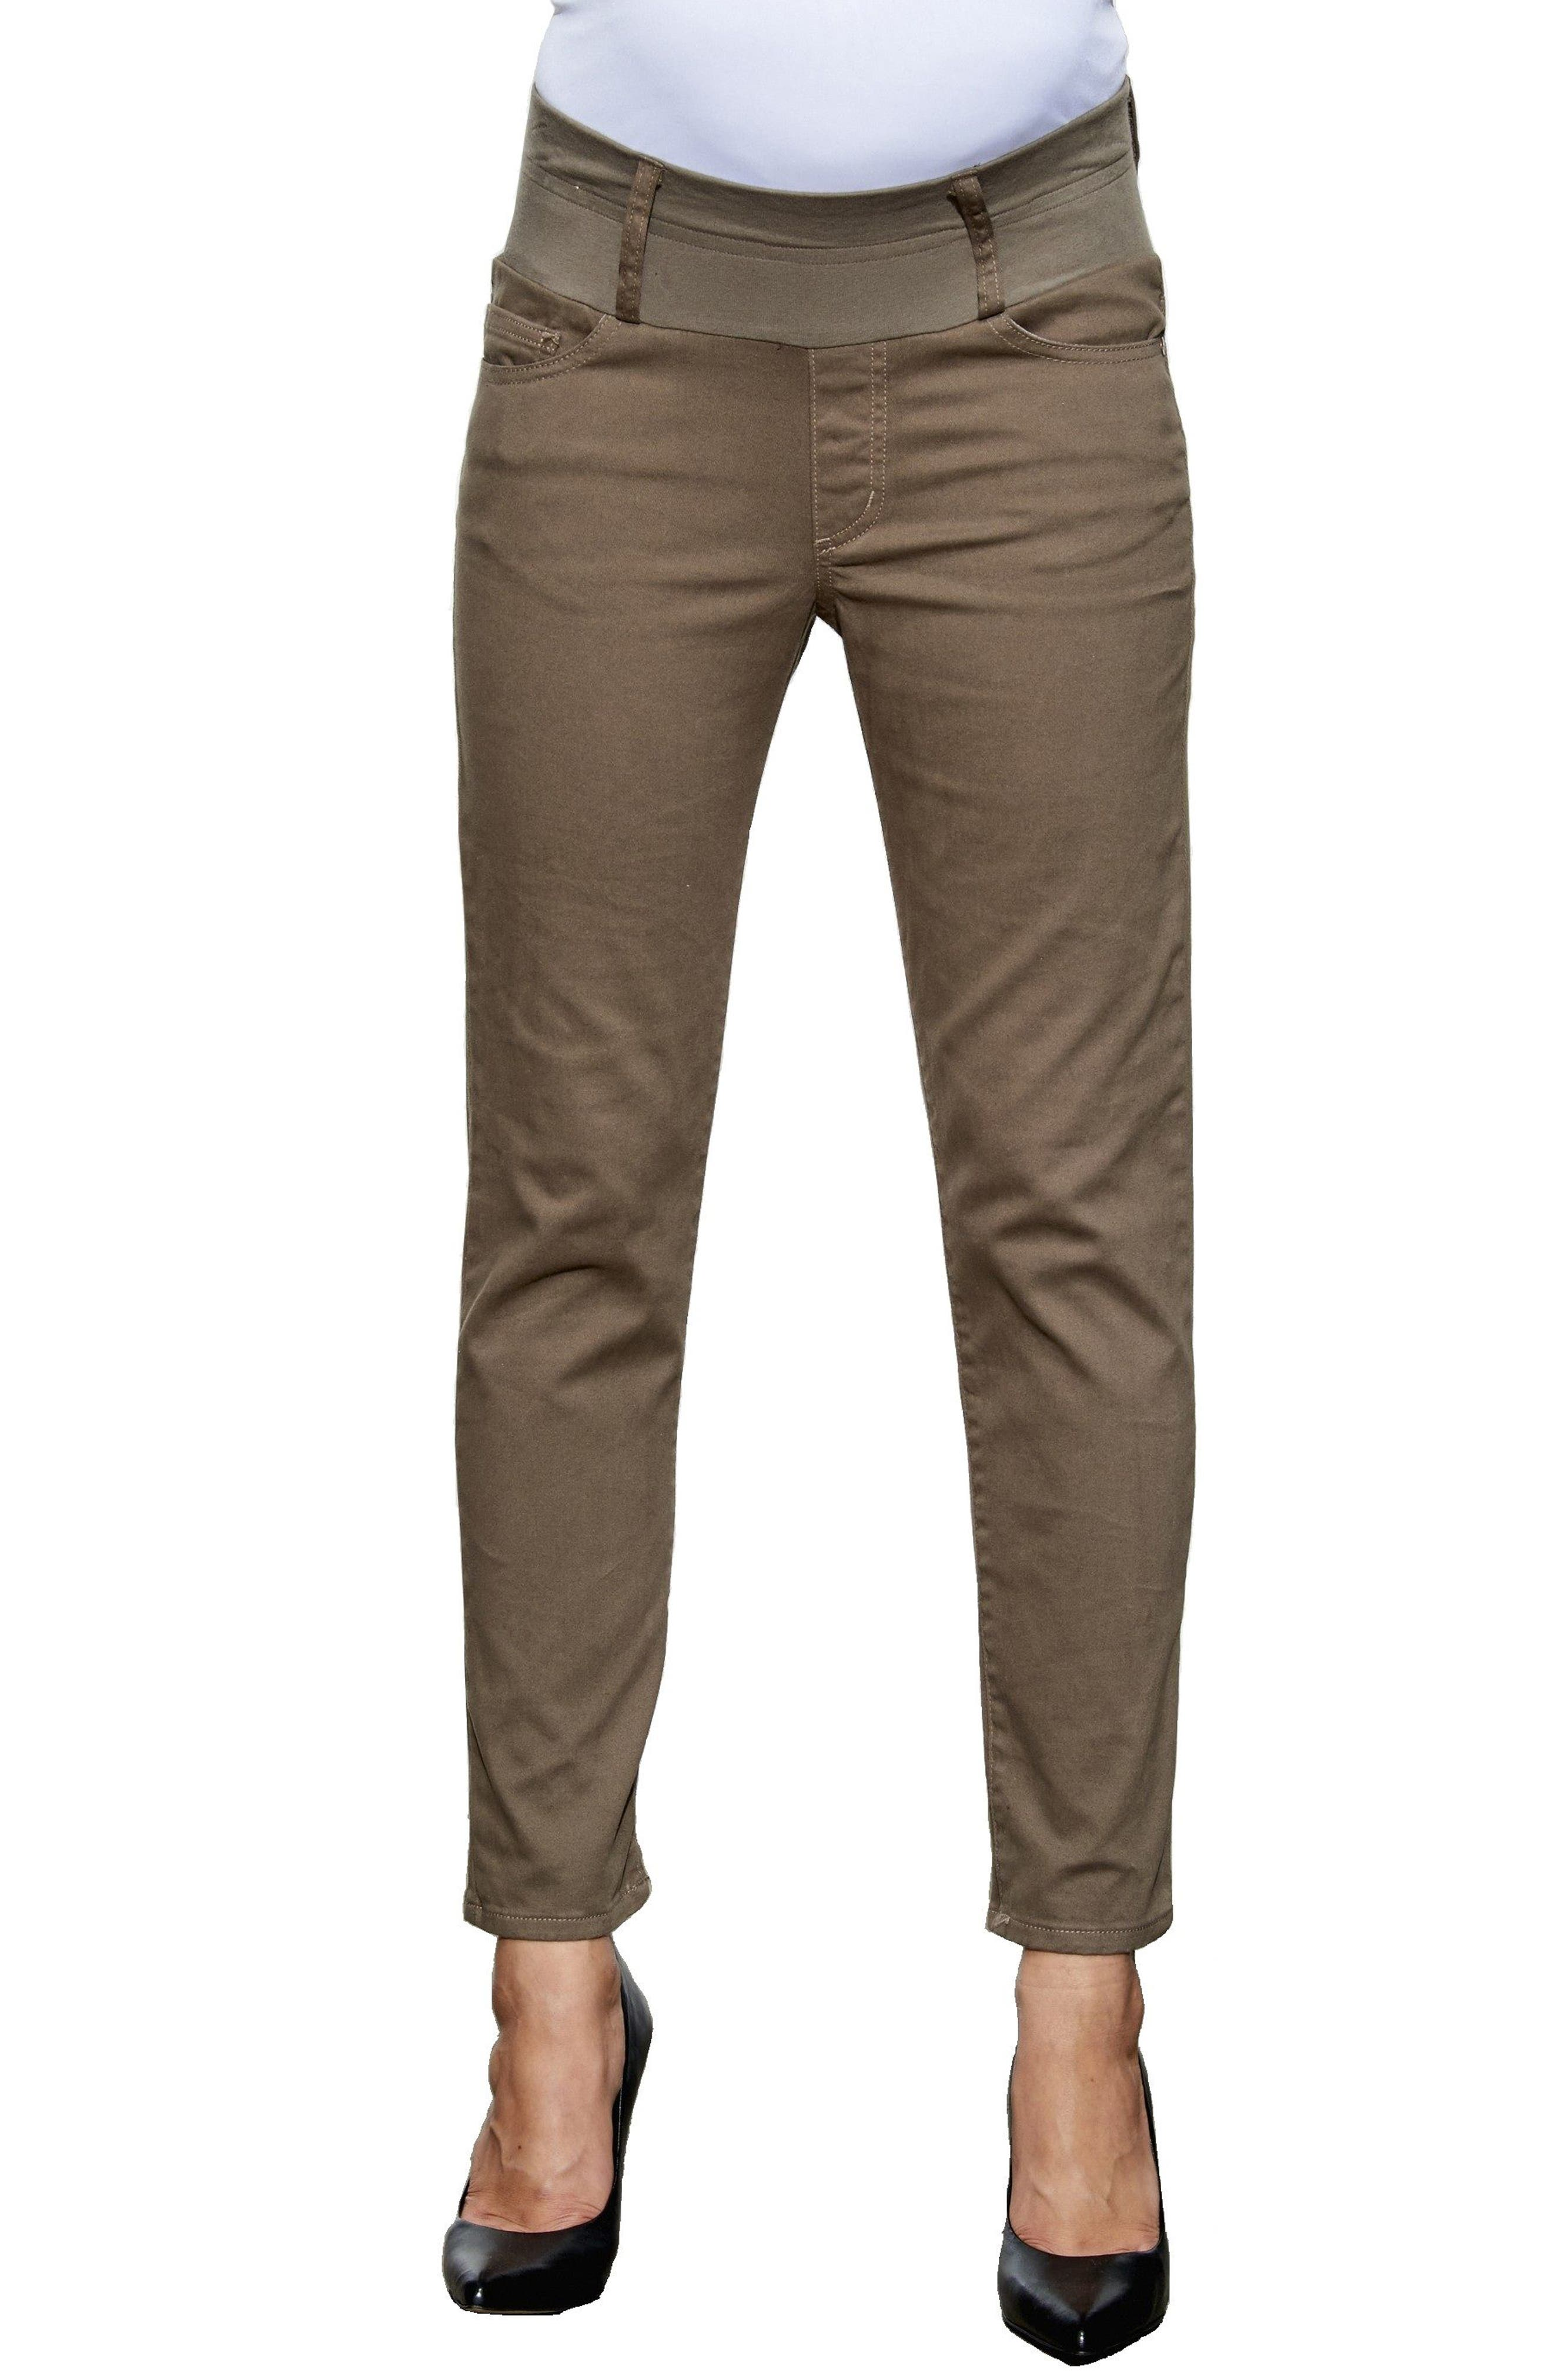 MATERNAL AMERICA Maternity Skinny Ankle Stretch Jeans, Main, color, TAUPE